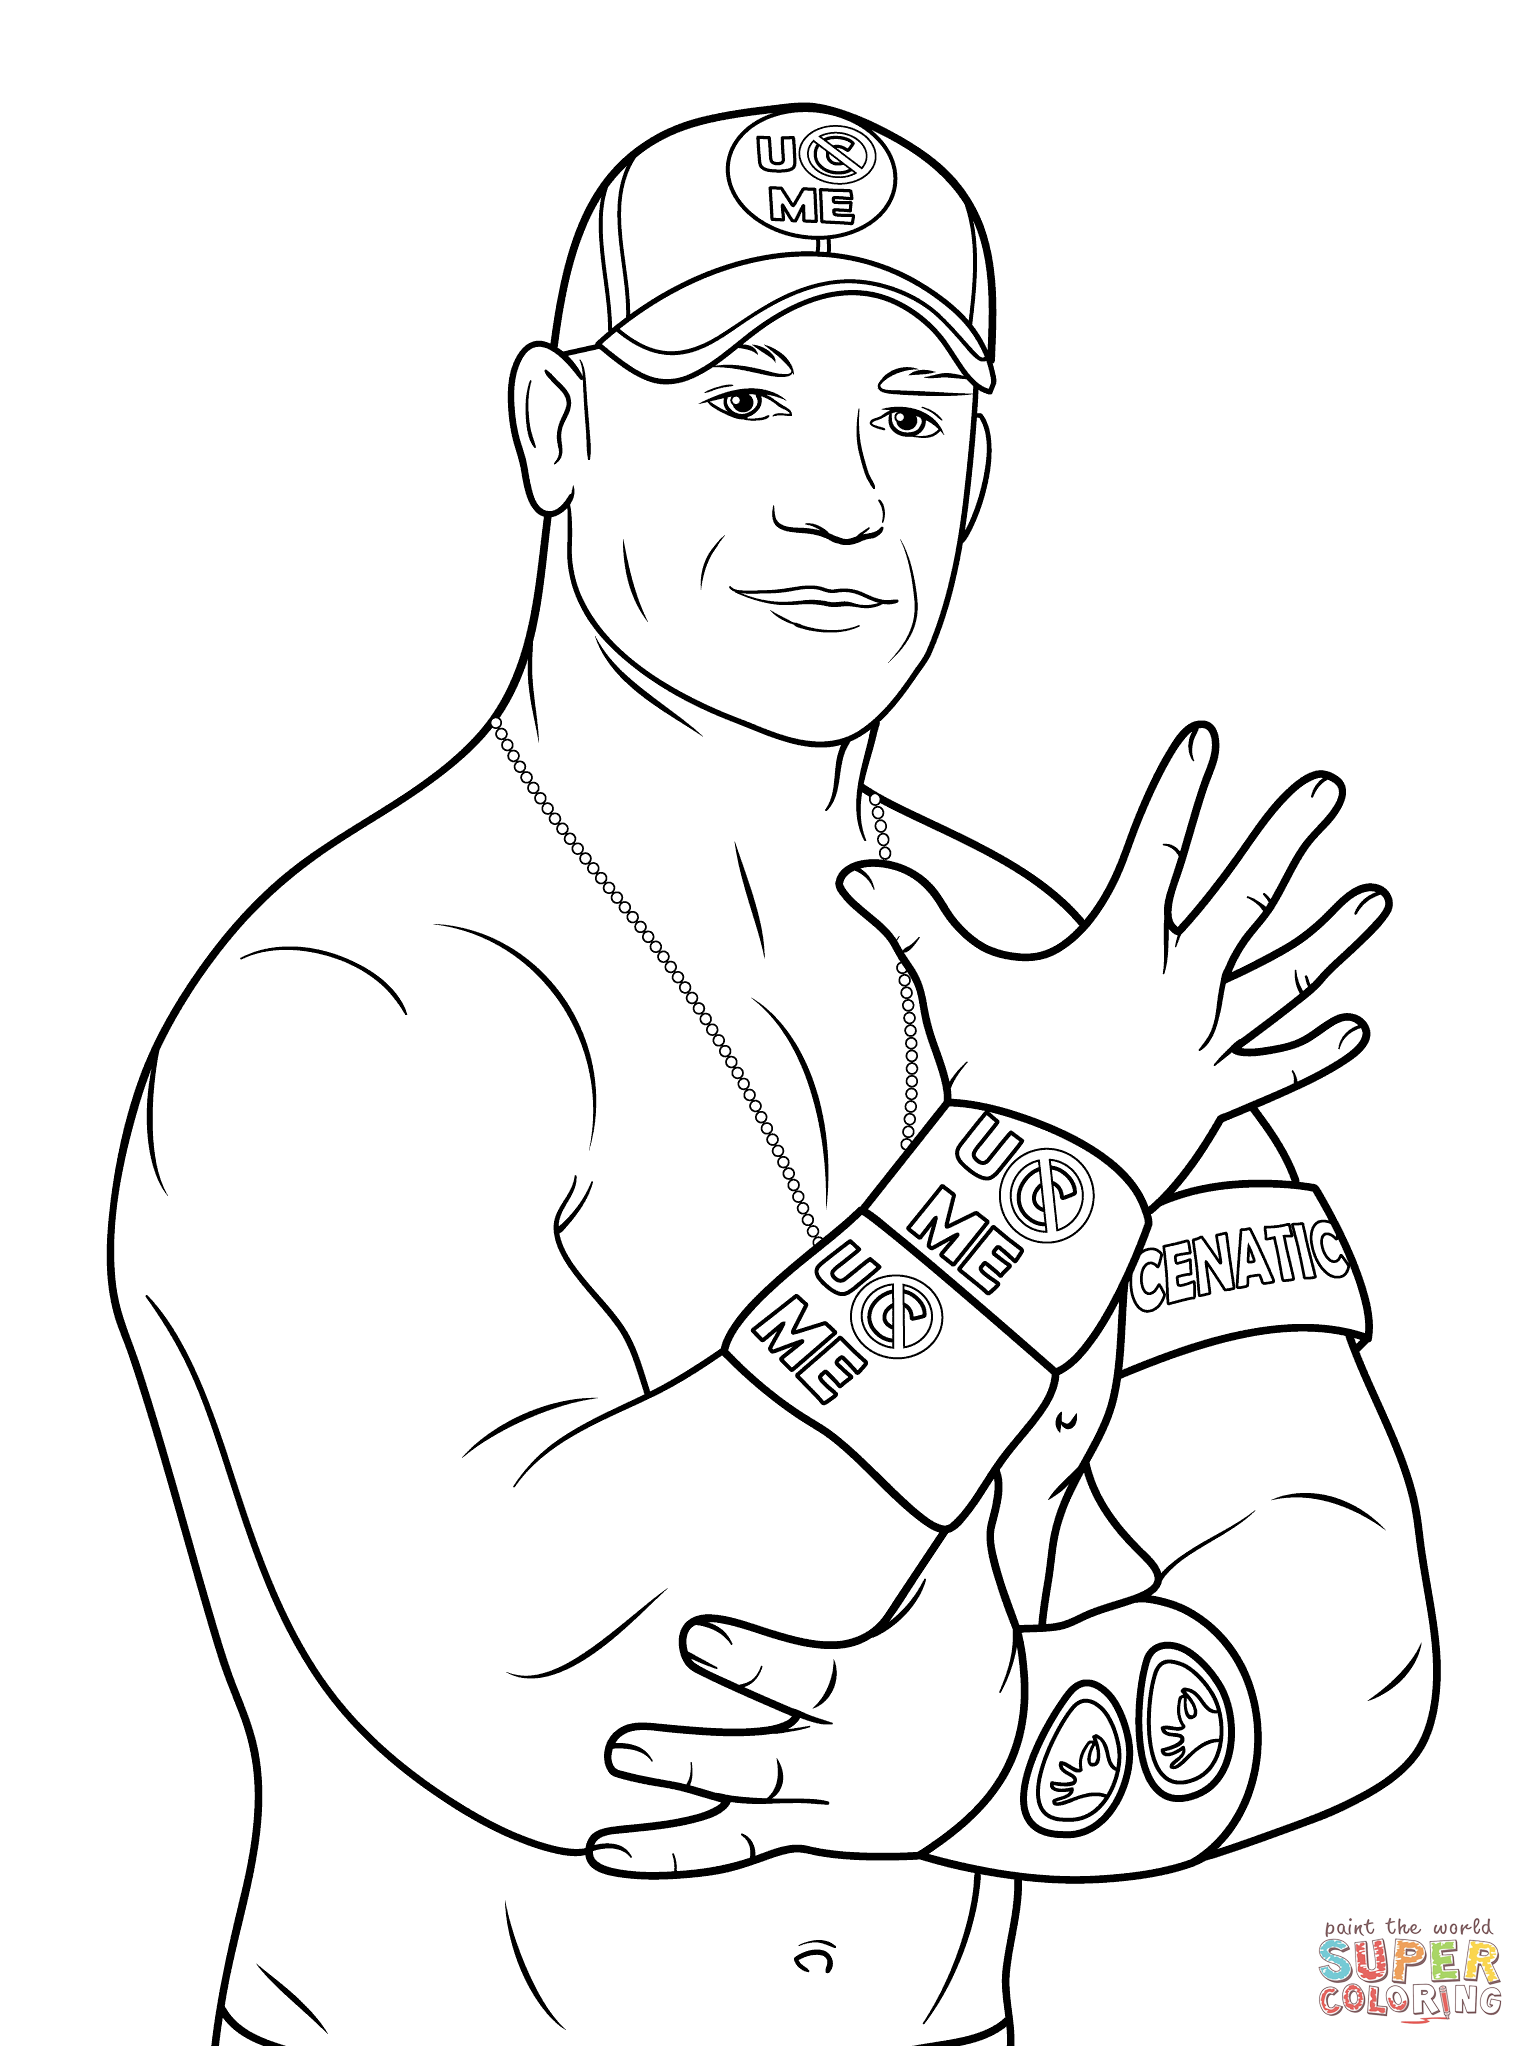 John Cena Coloring Page Free Printable Coloring Pages